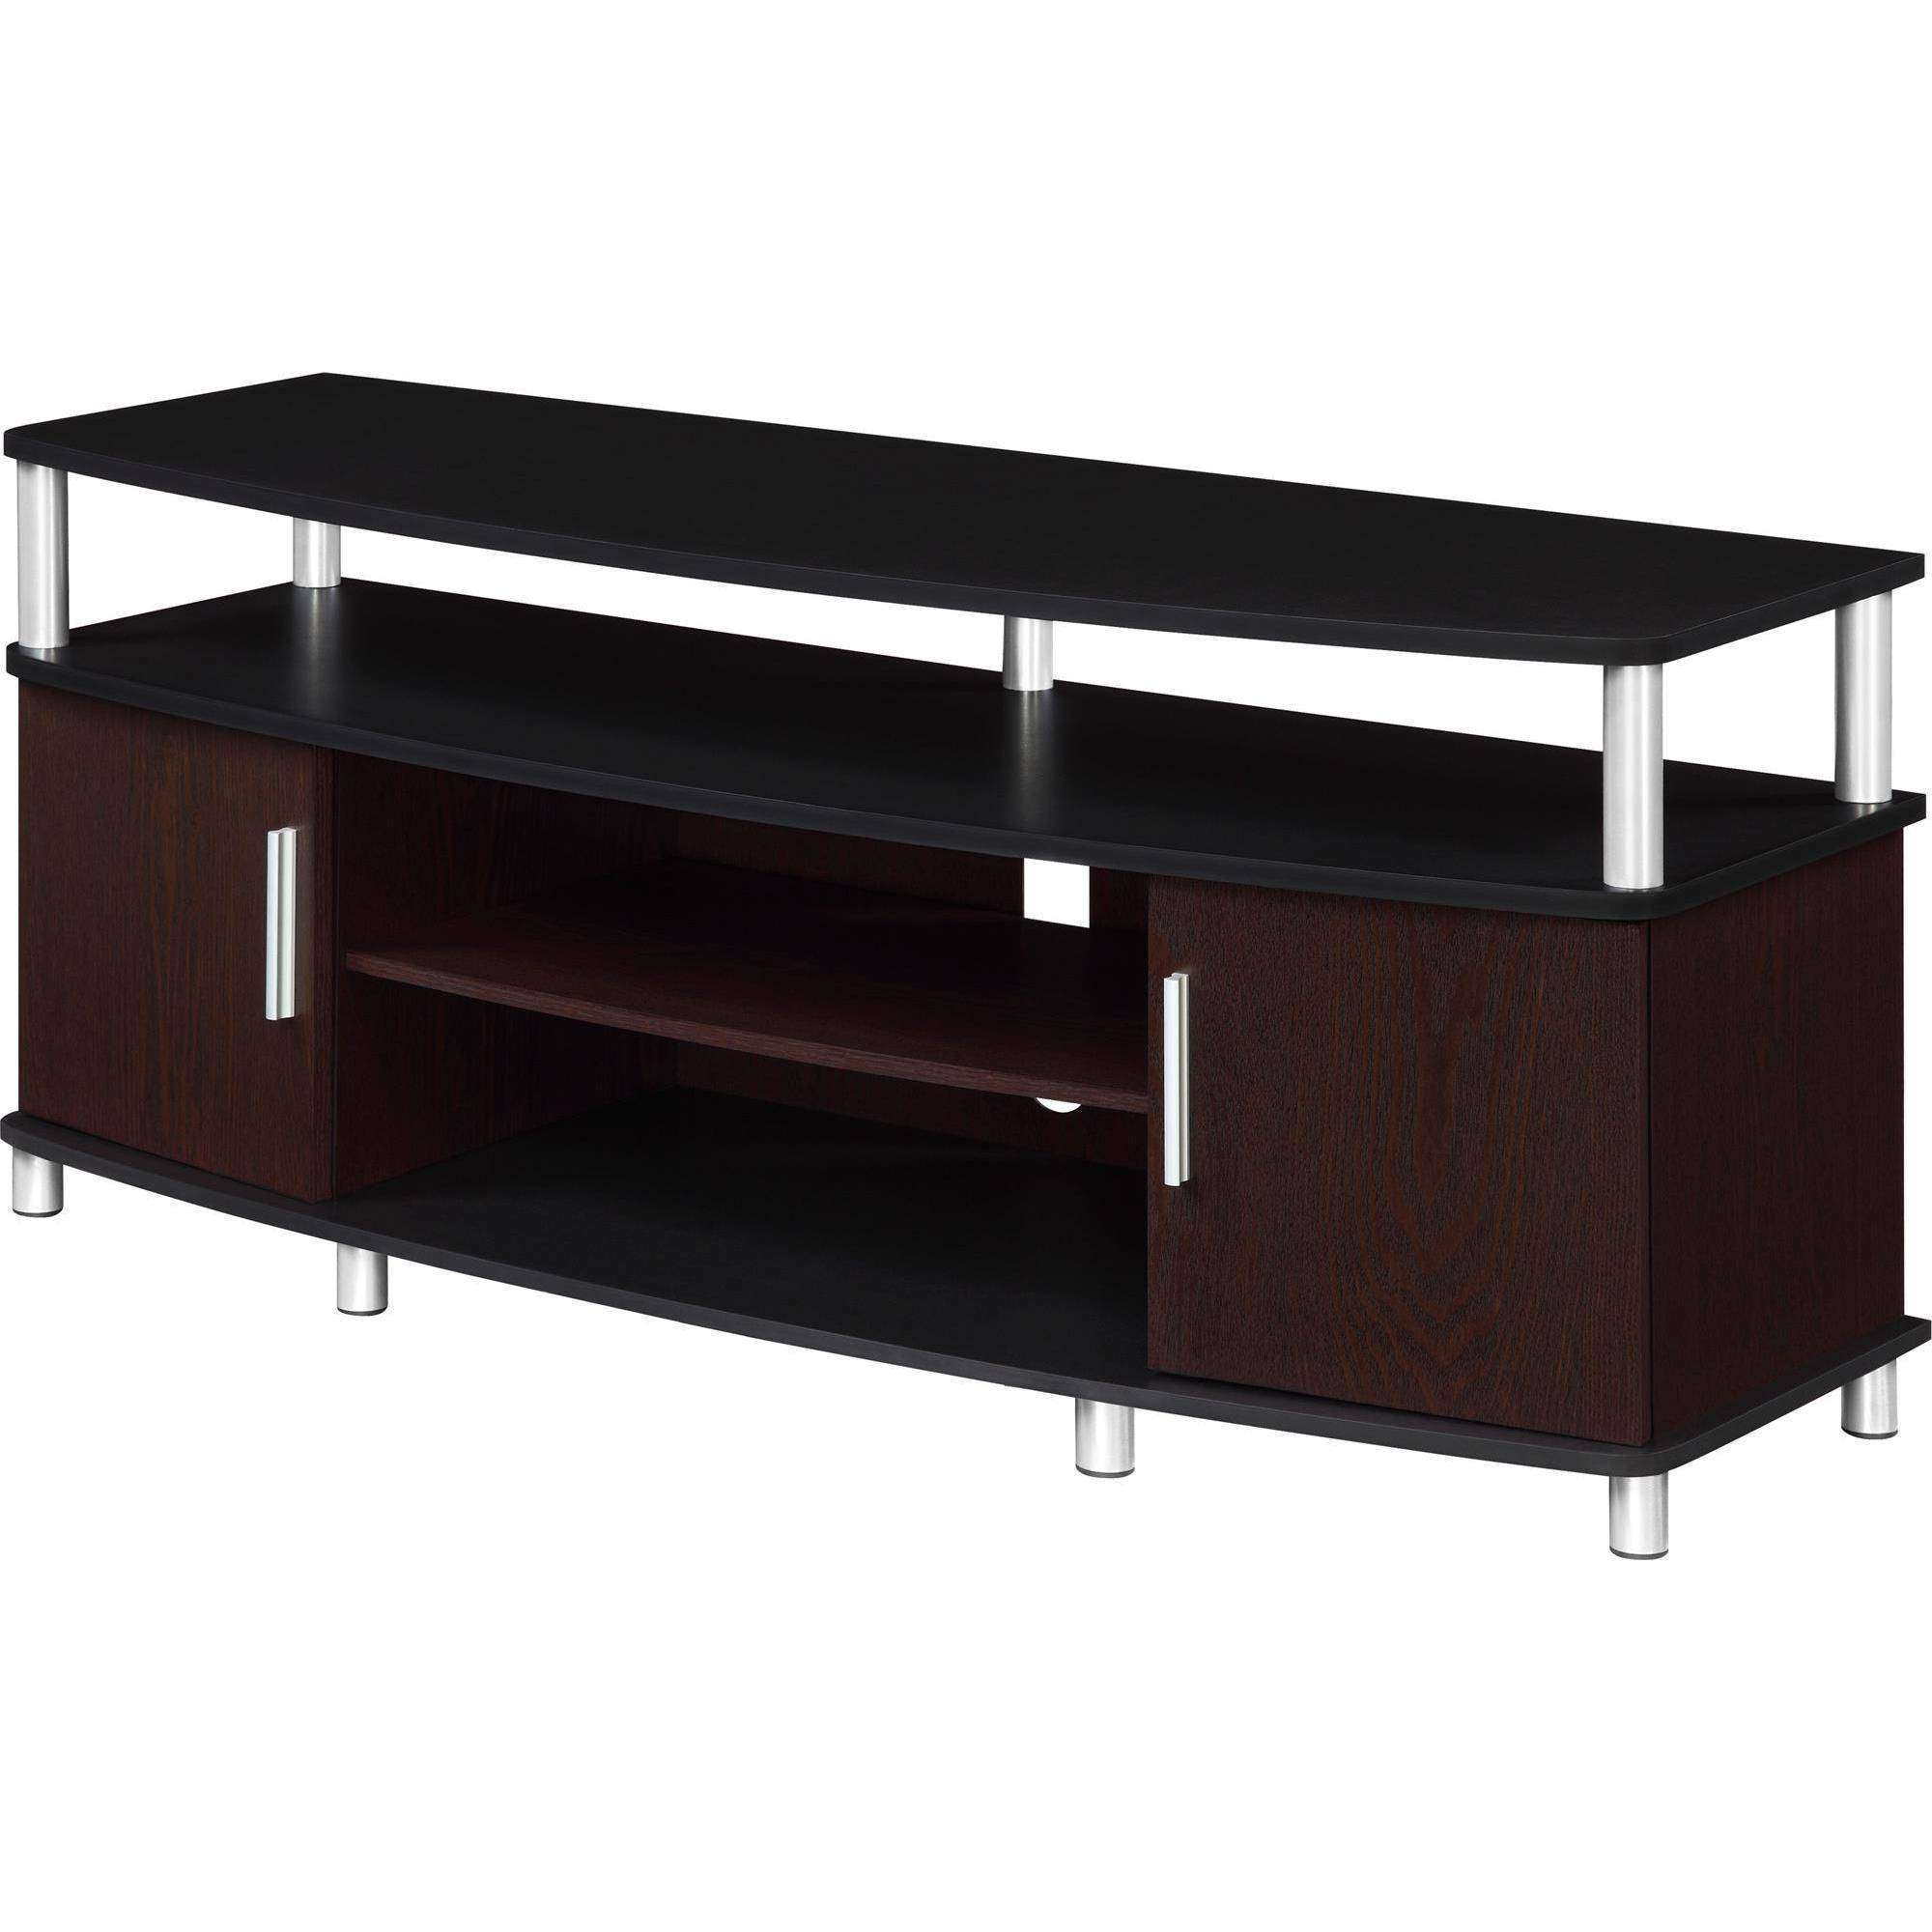 Carson Tv Stand For Tvs Up To Ddcb32A478E6 1 Stands Inch 50 Within Tv Stands For 50 Inch Tvs (View 4 of 15)